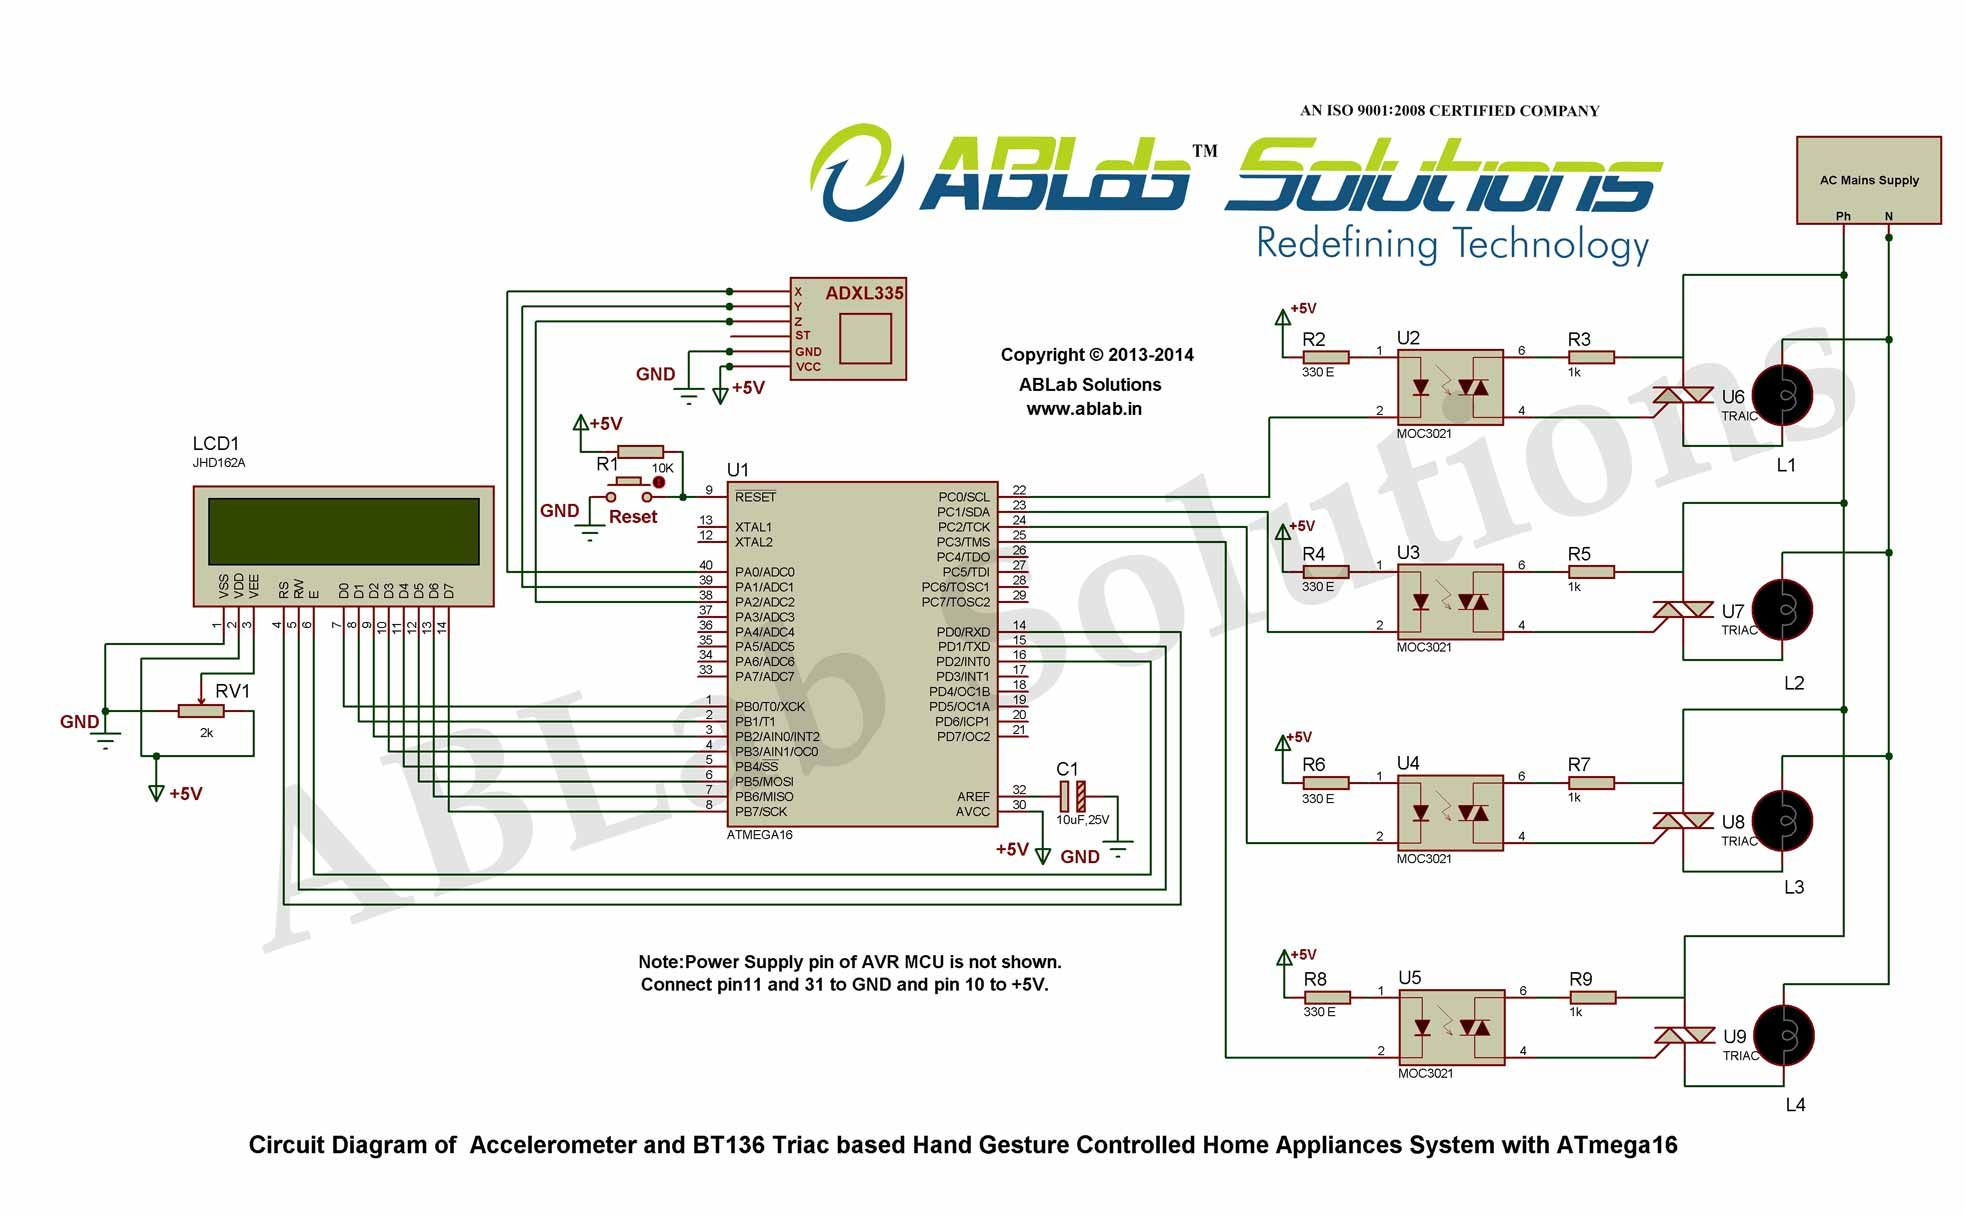 Accelerometer And Bt136 Triac Based Hand Gesture Controlled Home Circuit Diagram Appliances System With Avr Atmega16 Microcontroller